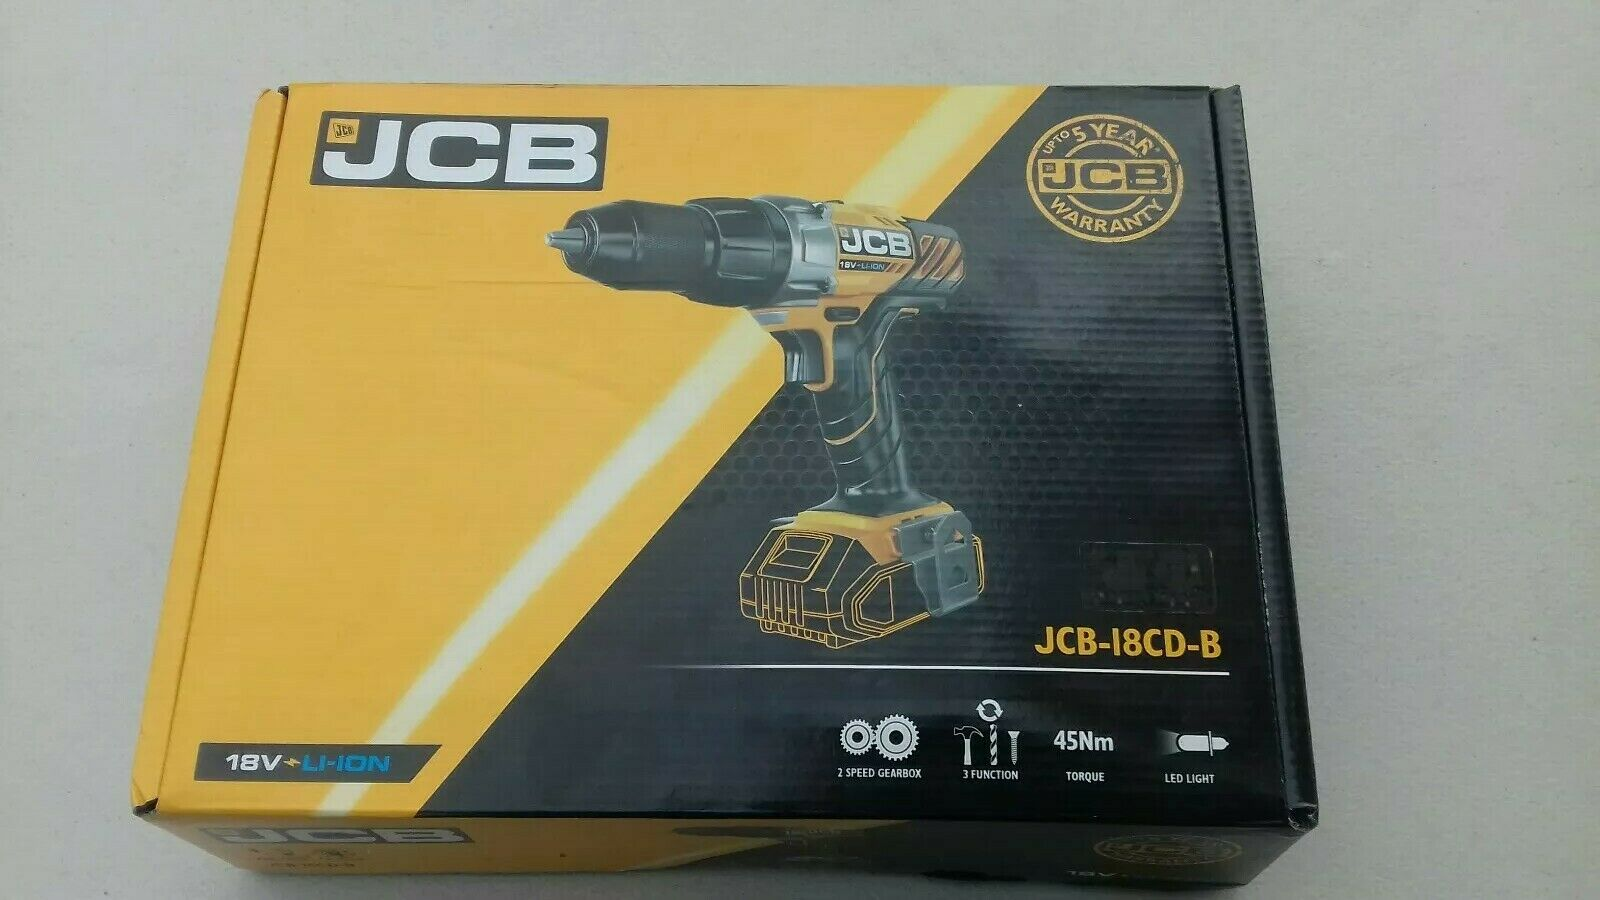 JCB-18CD Cordless Combi Drill, New with battery and charger. Unopened..